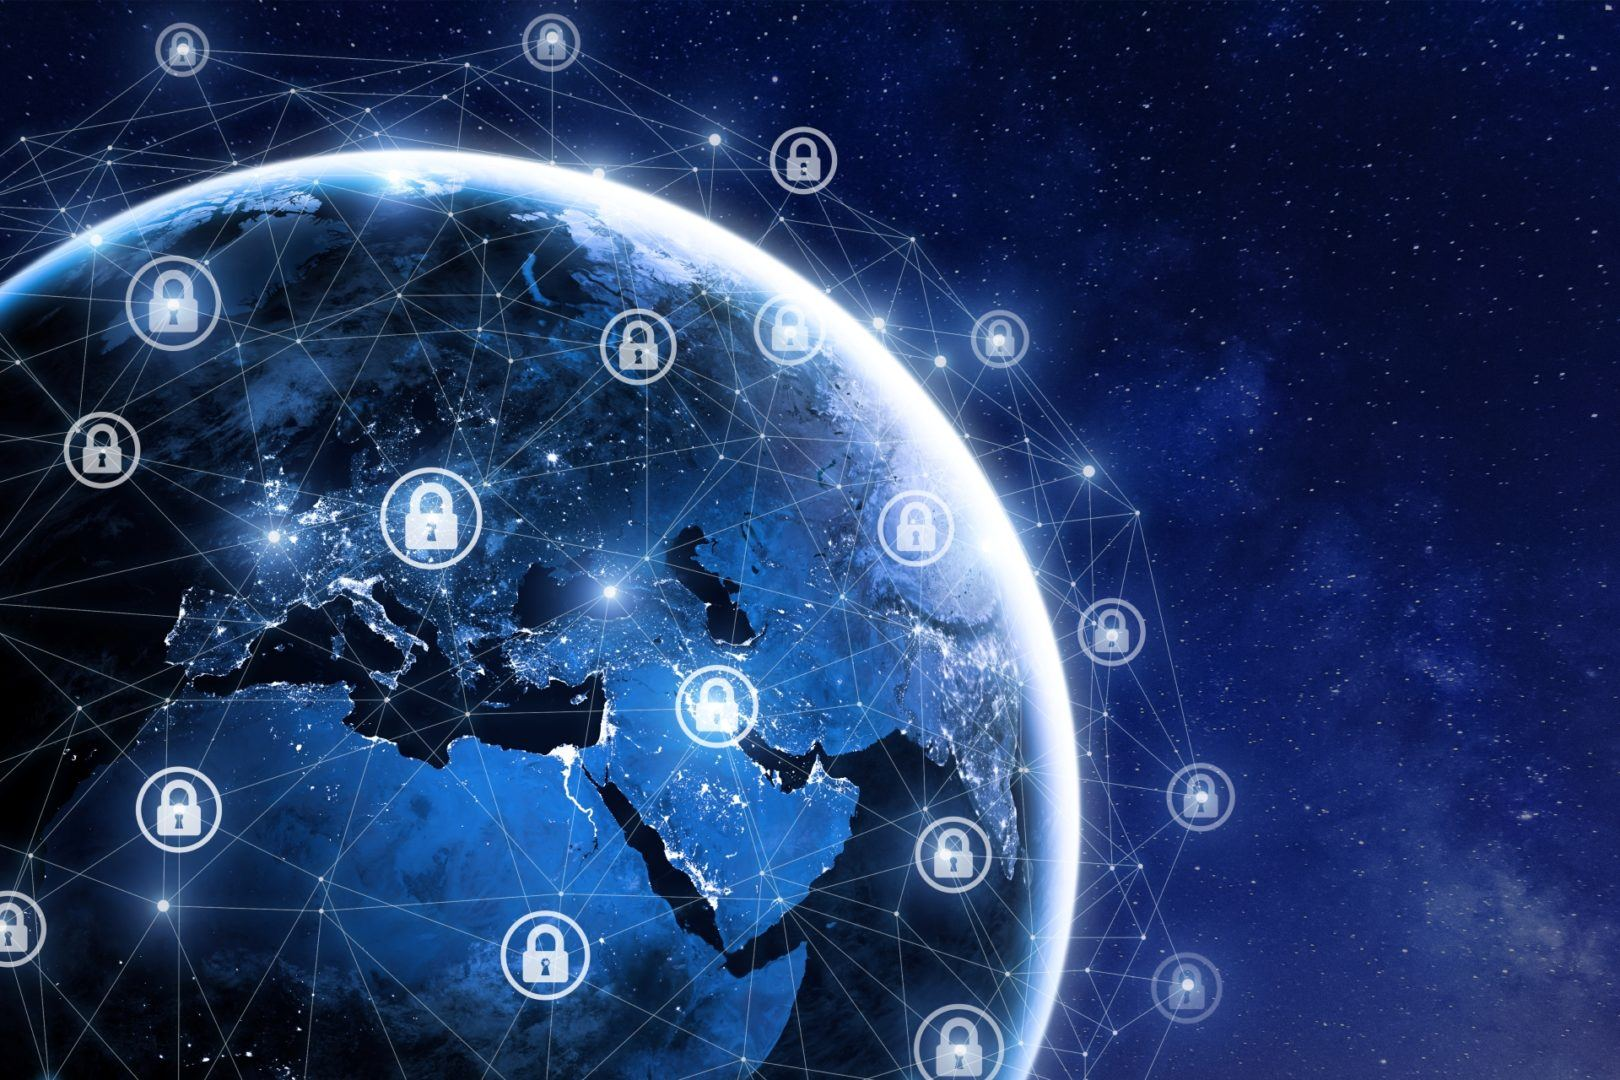 Image of the globe surrounded by digital locks to convey confidential computing paradigm.